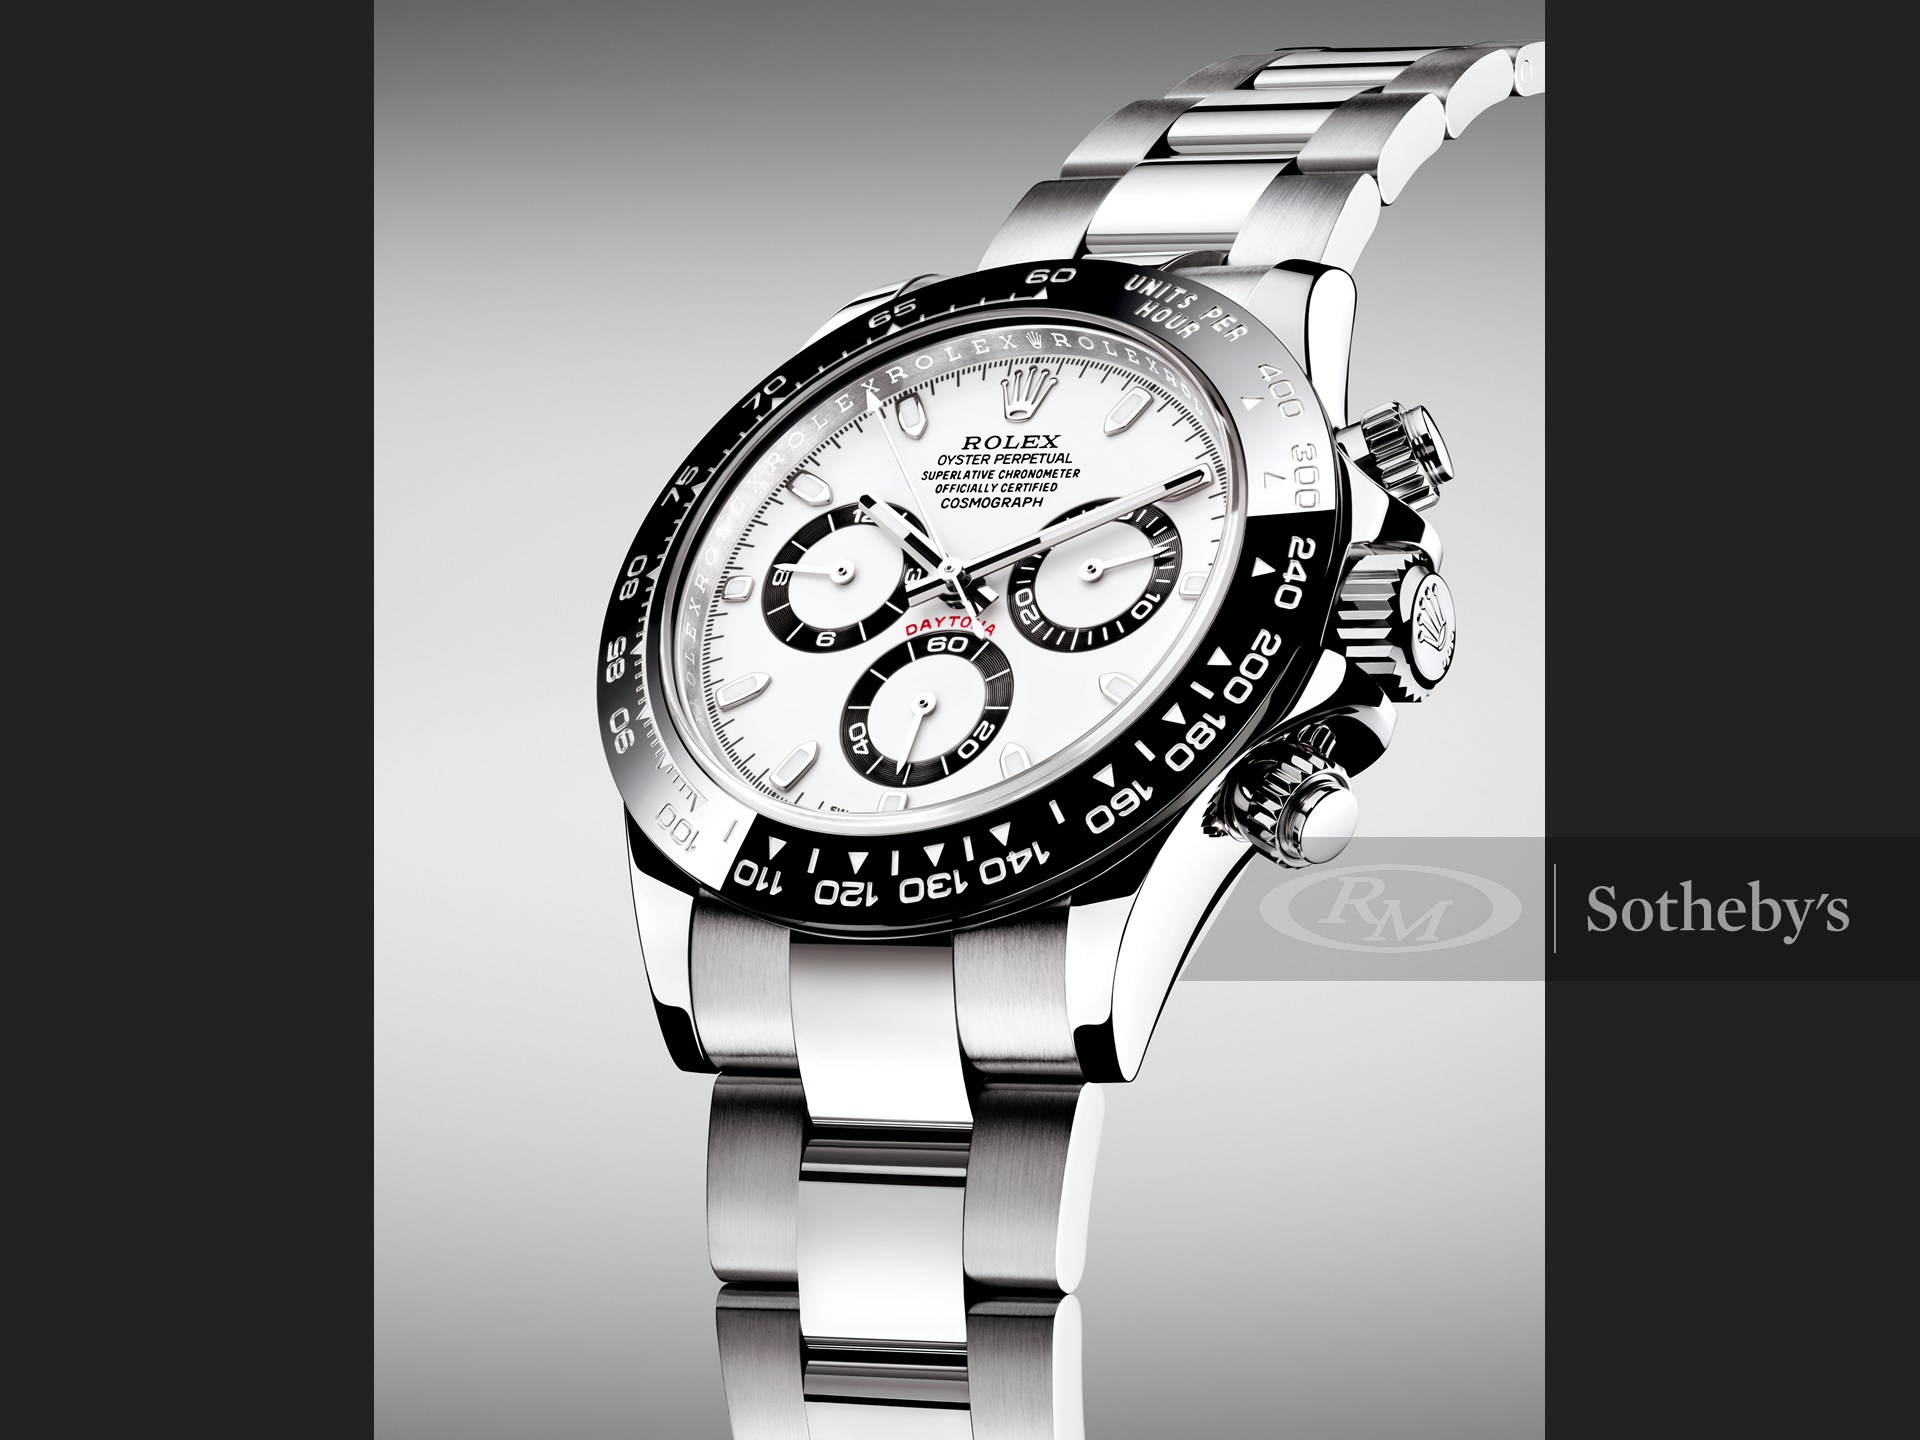 A beautiful Oyster Perpetual Cosmograph Daytona kindly donated by Rolex